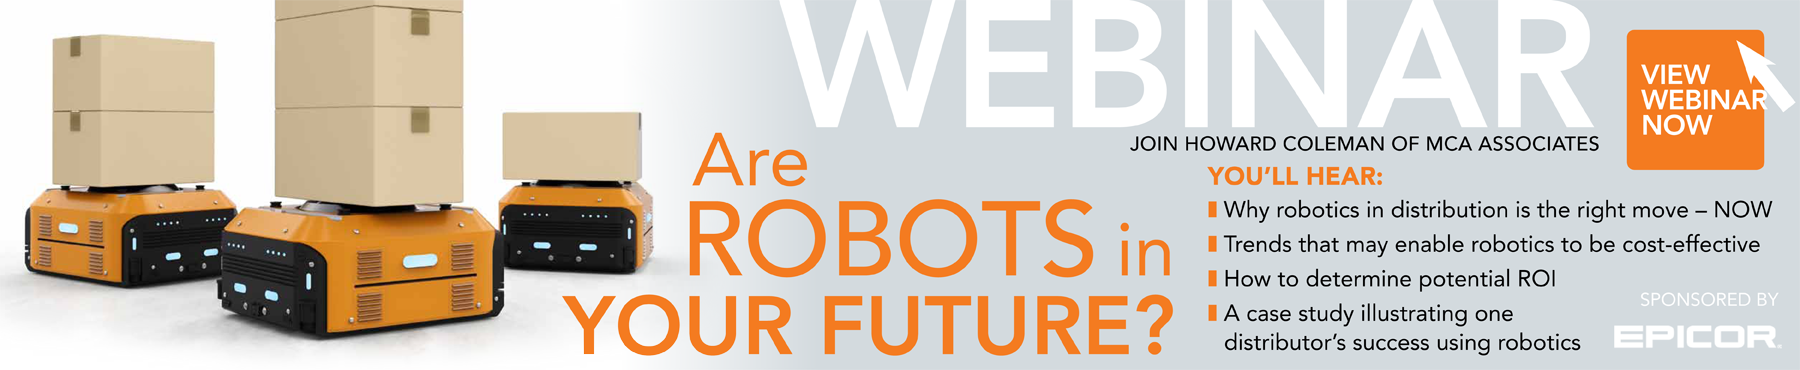 Are Robots in Your Future?